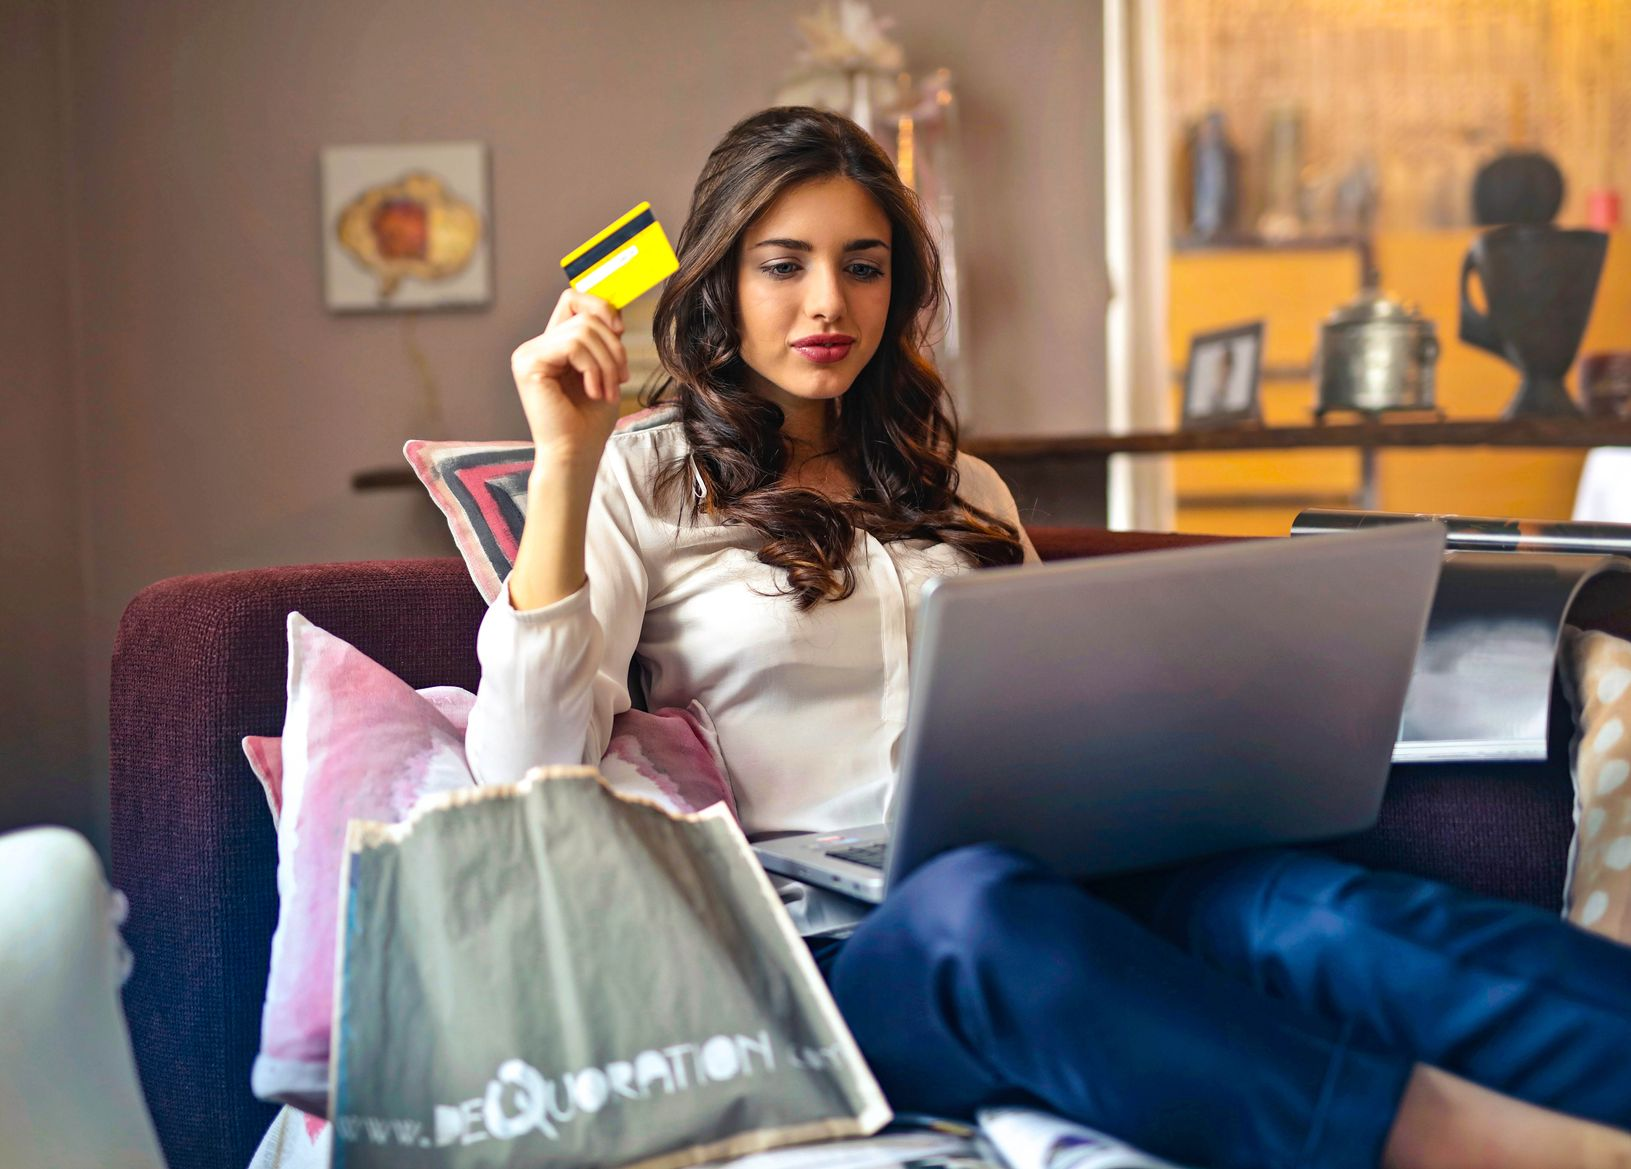 Woman holding a credit card with a laptop on her lap, indicating that responsible use of credit cards is one way to stop overspending